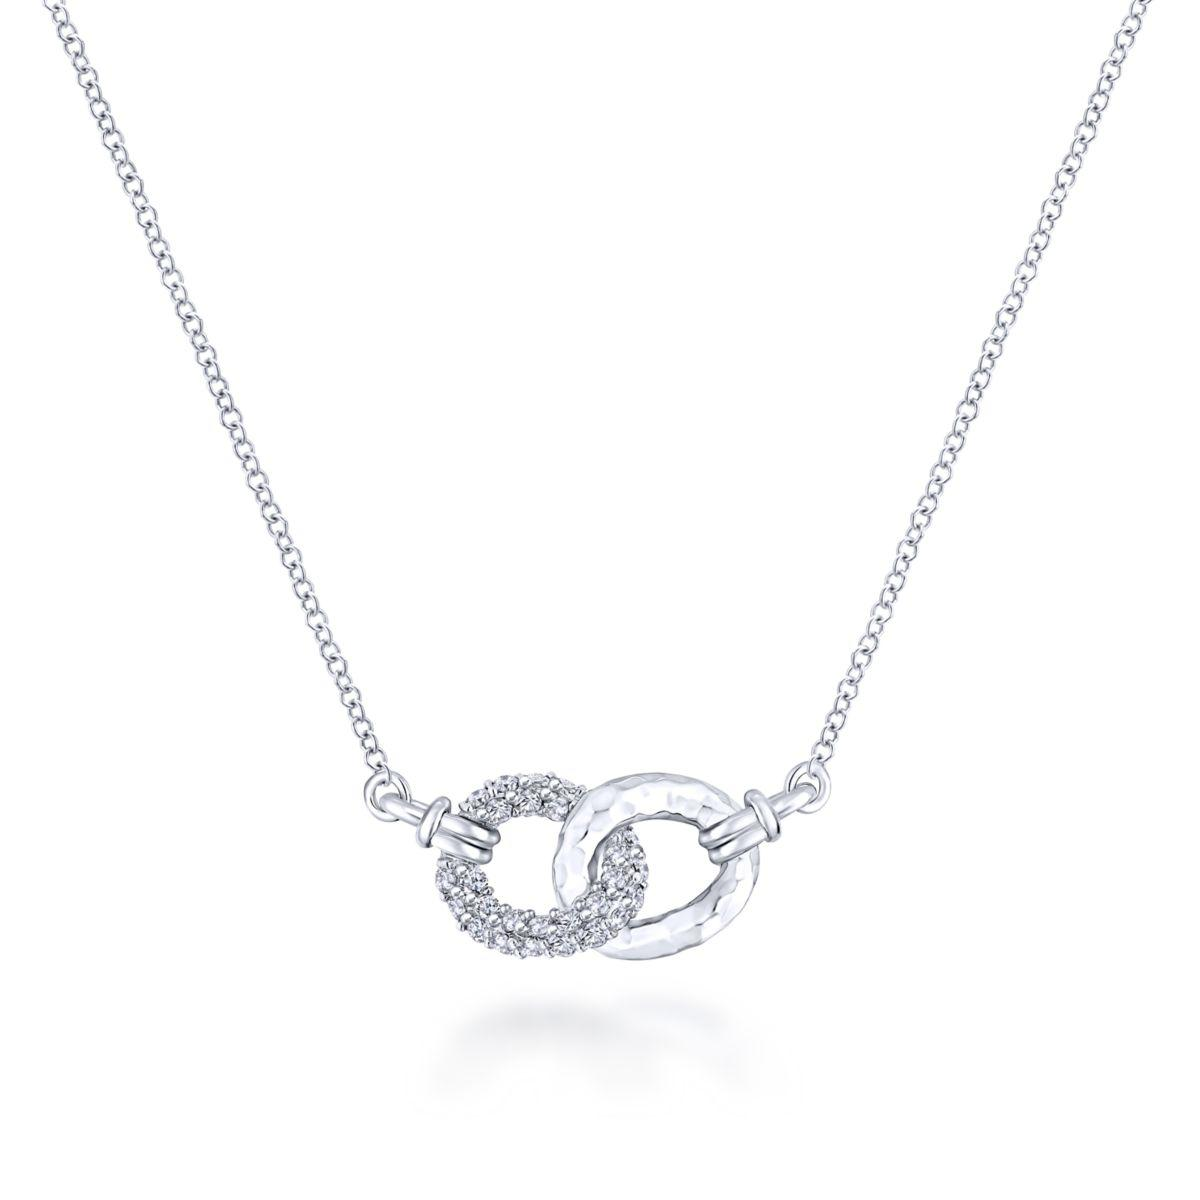 Sterling Silver Necklace by Gabriel & Co